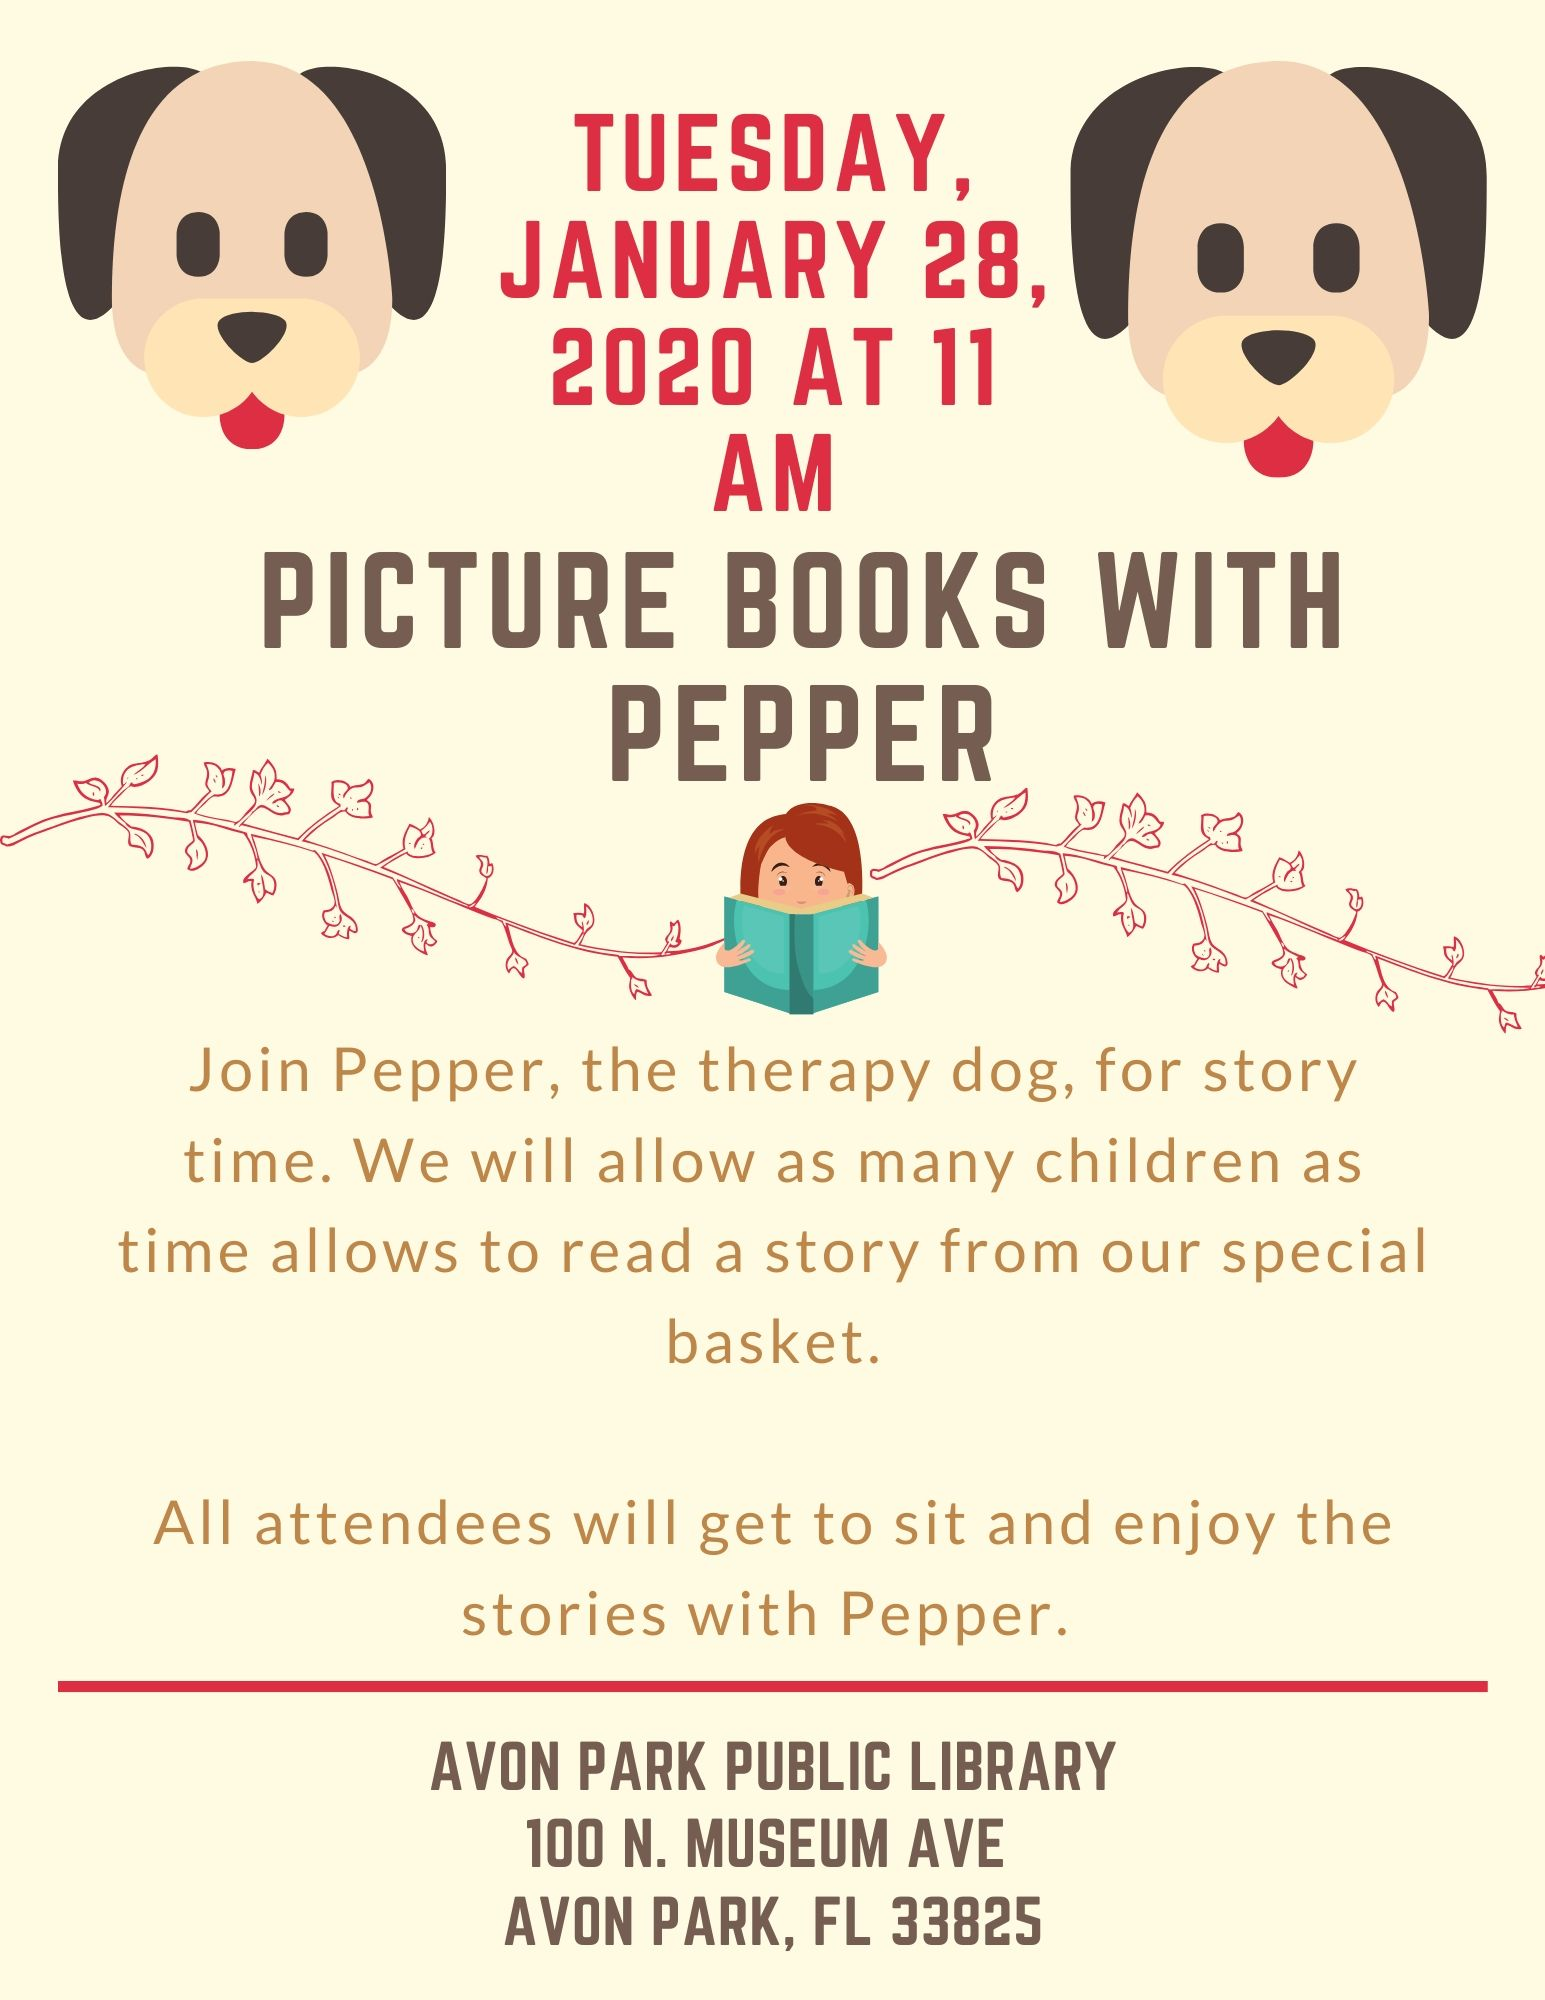 On Tuesday, January 28, 2020 at 11:00 AM we will be having Picture Books with Pepper, a trained therapy dog at the Avon Park Public Library. For more information, call 863-452-3803.